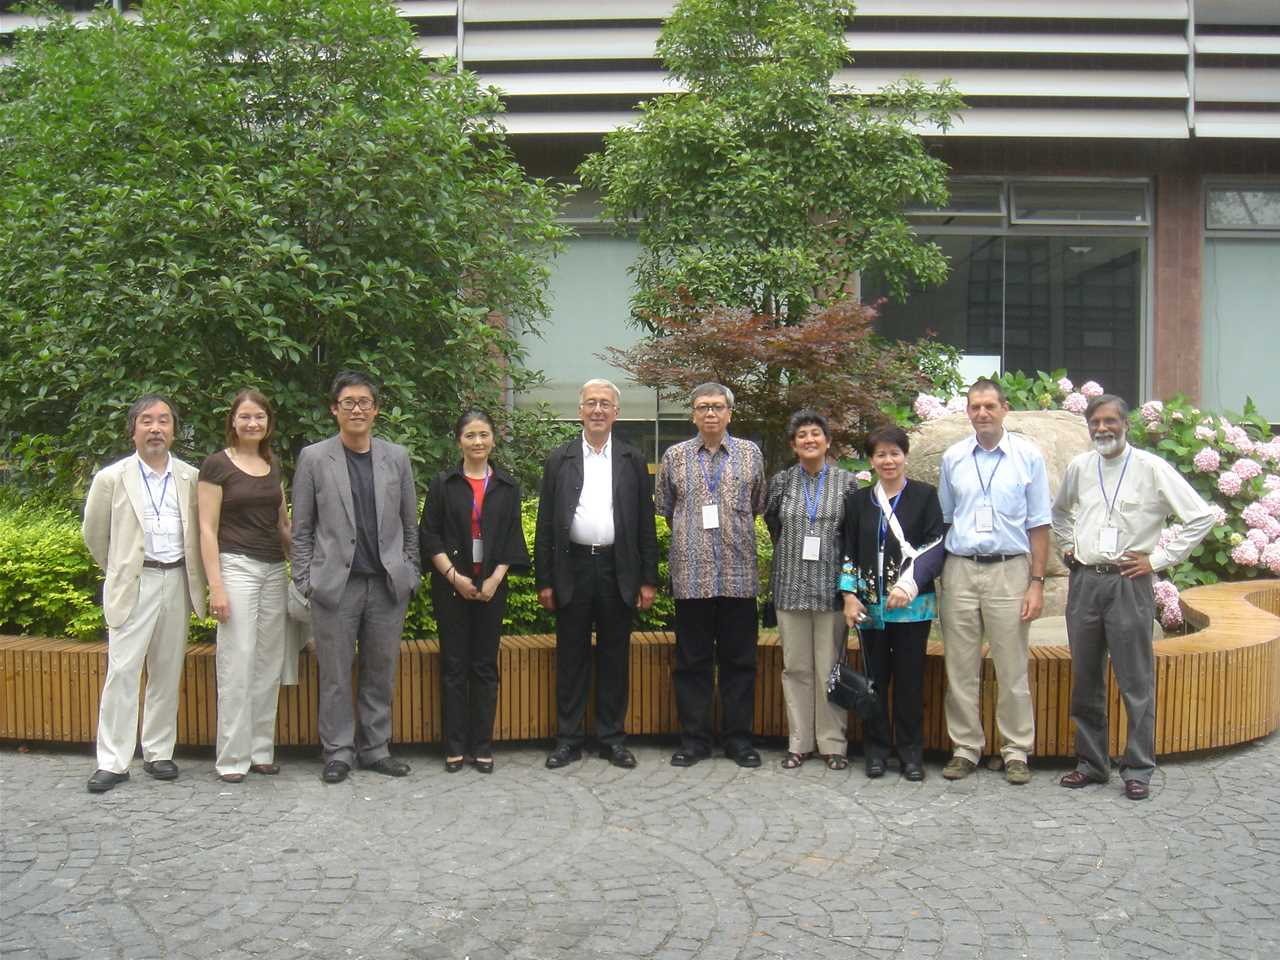 The Holcim Awards jury for region Asia Pacific met in Shanghai, China in June 2008 to select …